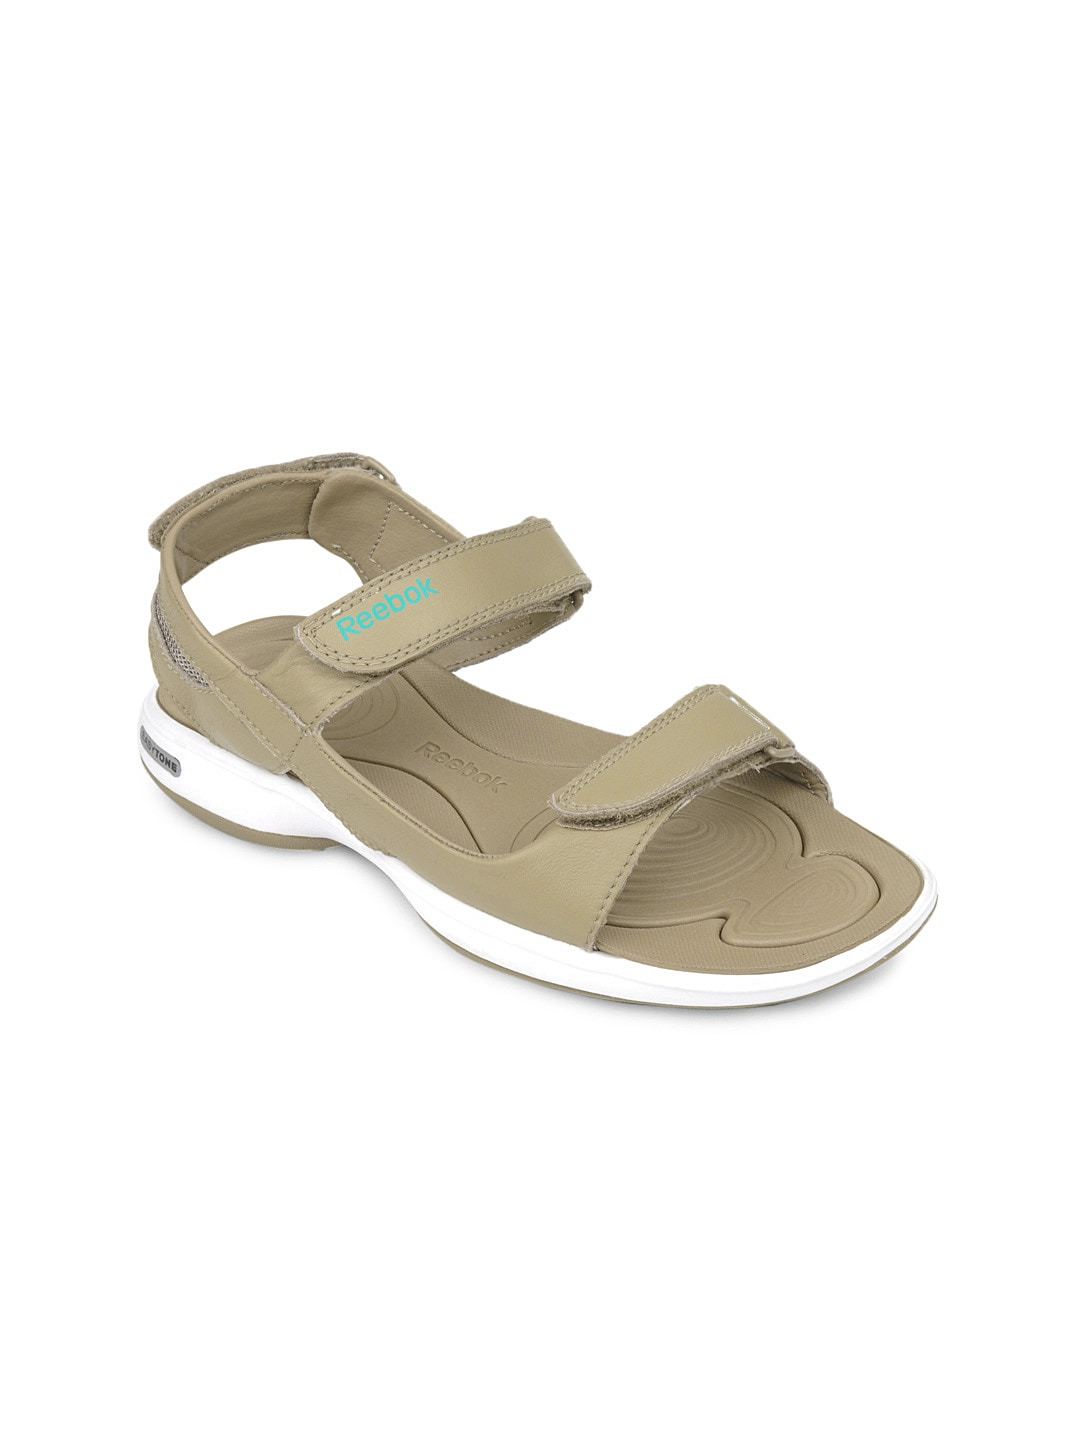 0845a42d7a34 Reebok j84324 Women Brown Easytone Nvee Ii Sports Sandals- Price in India